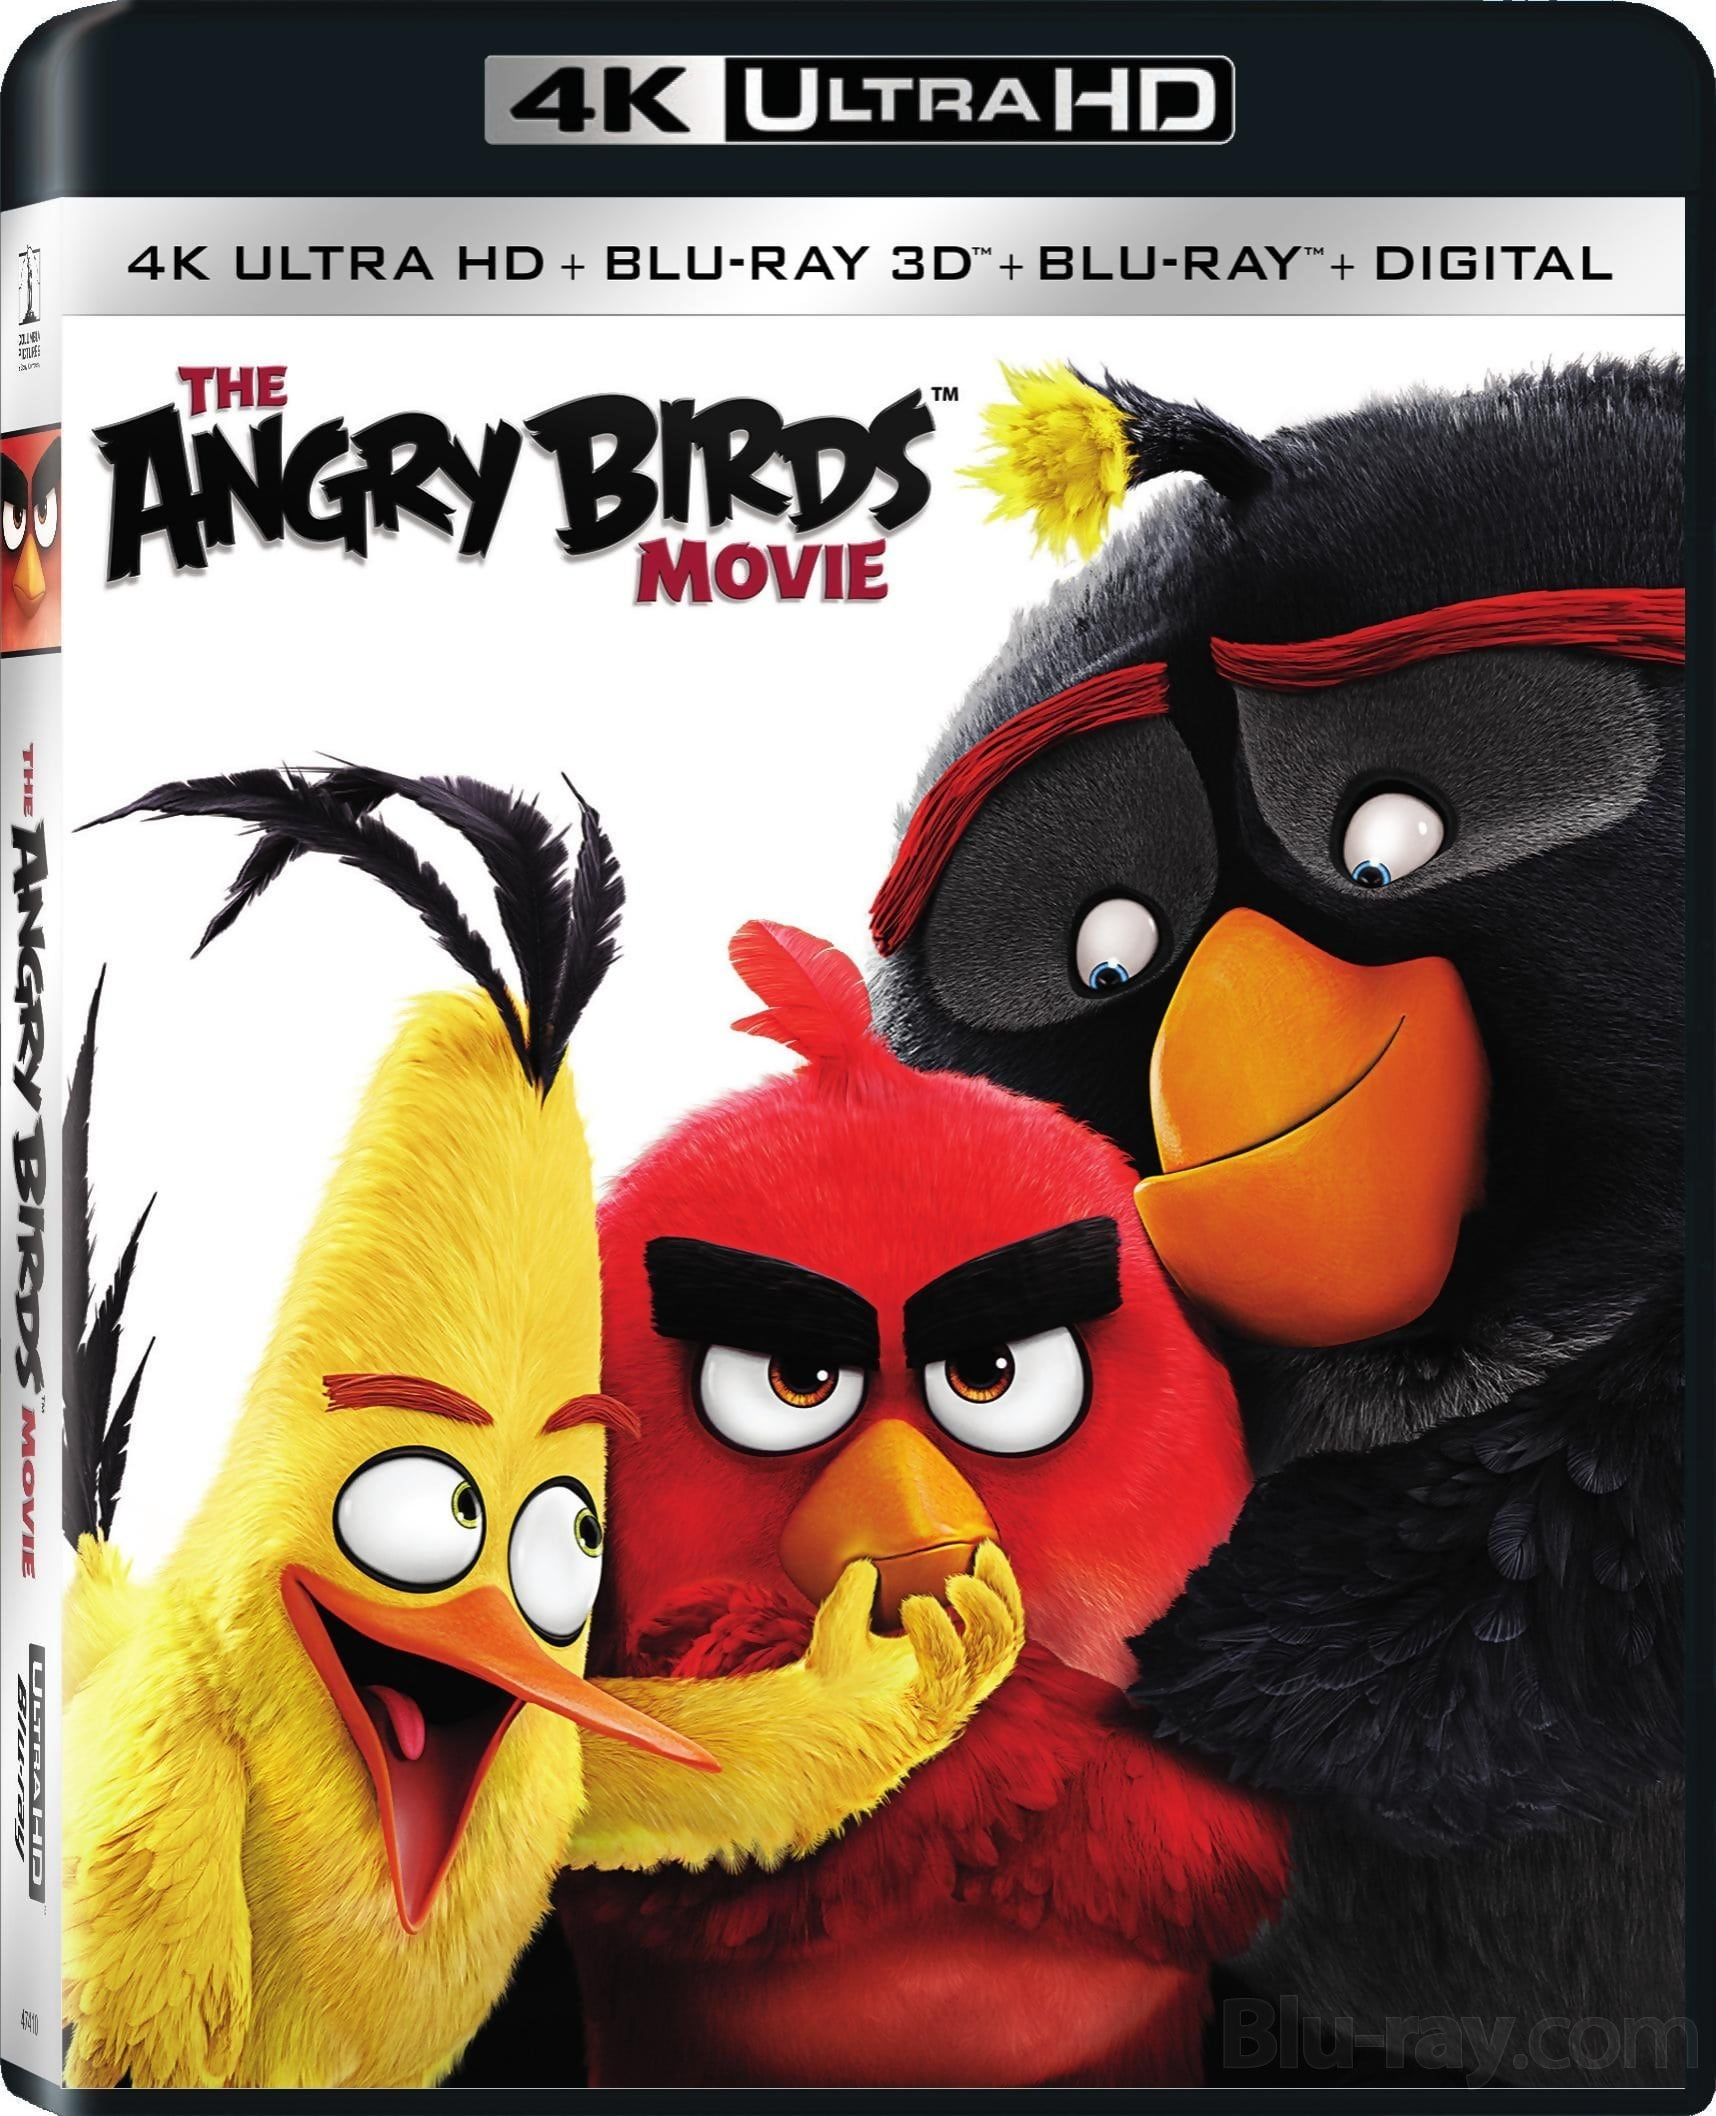 Angry Birds (2016) in 4k Ultra HD